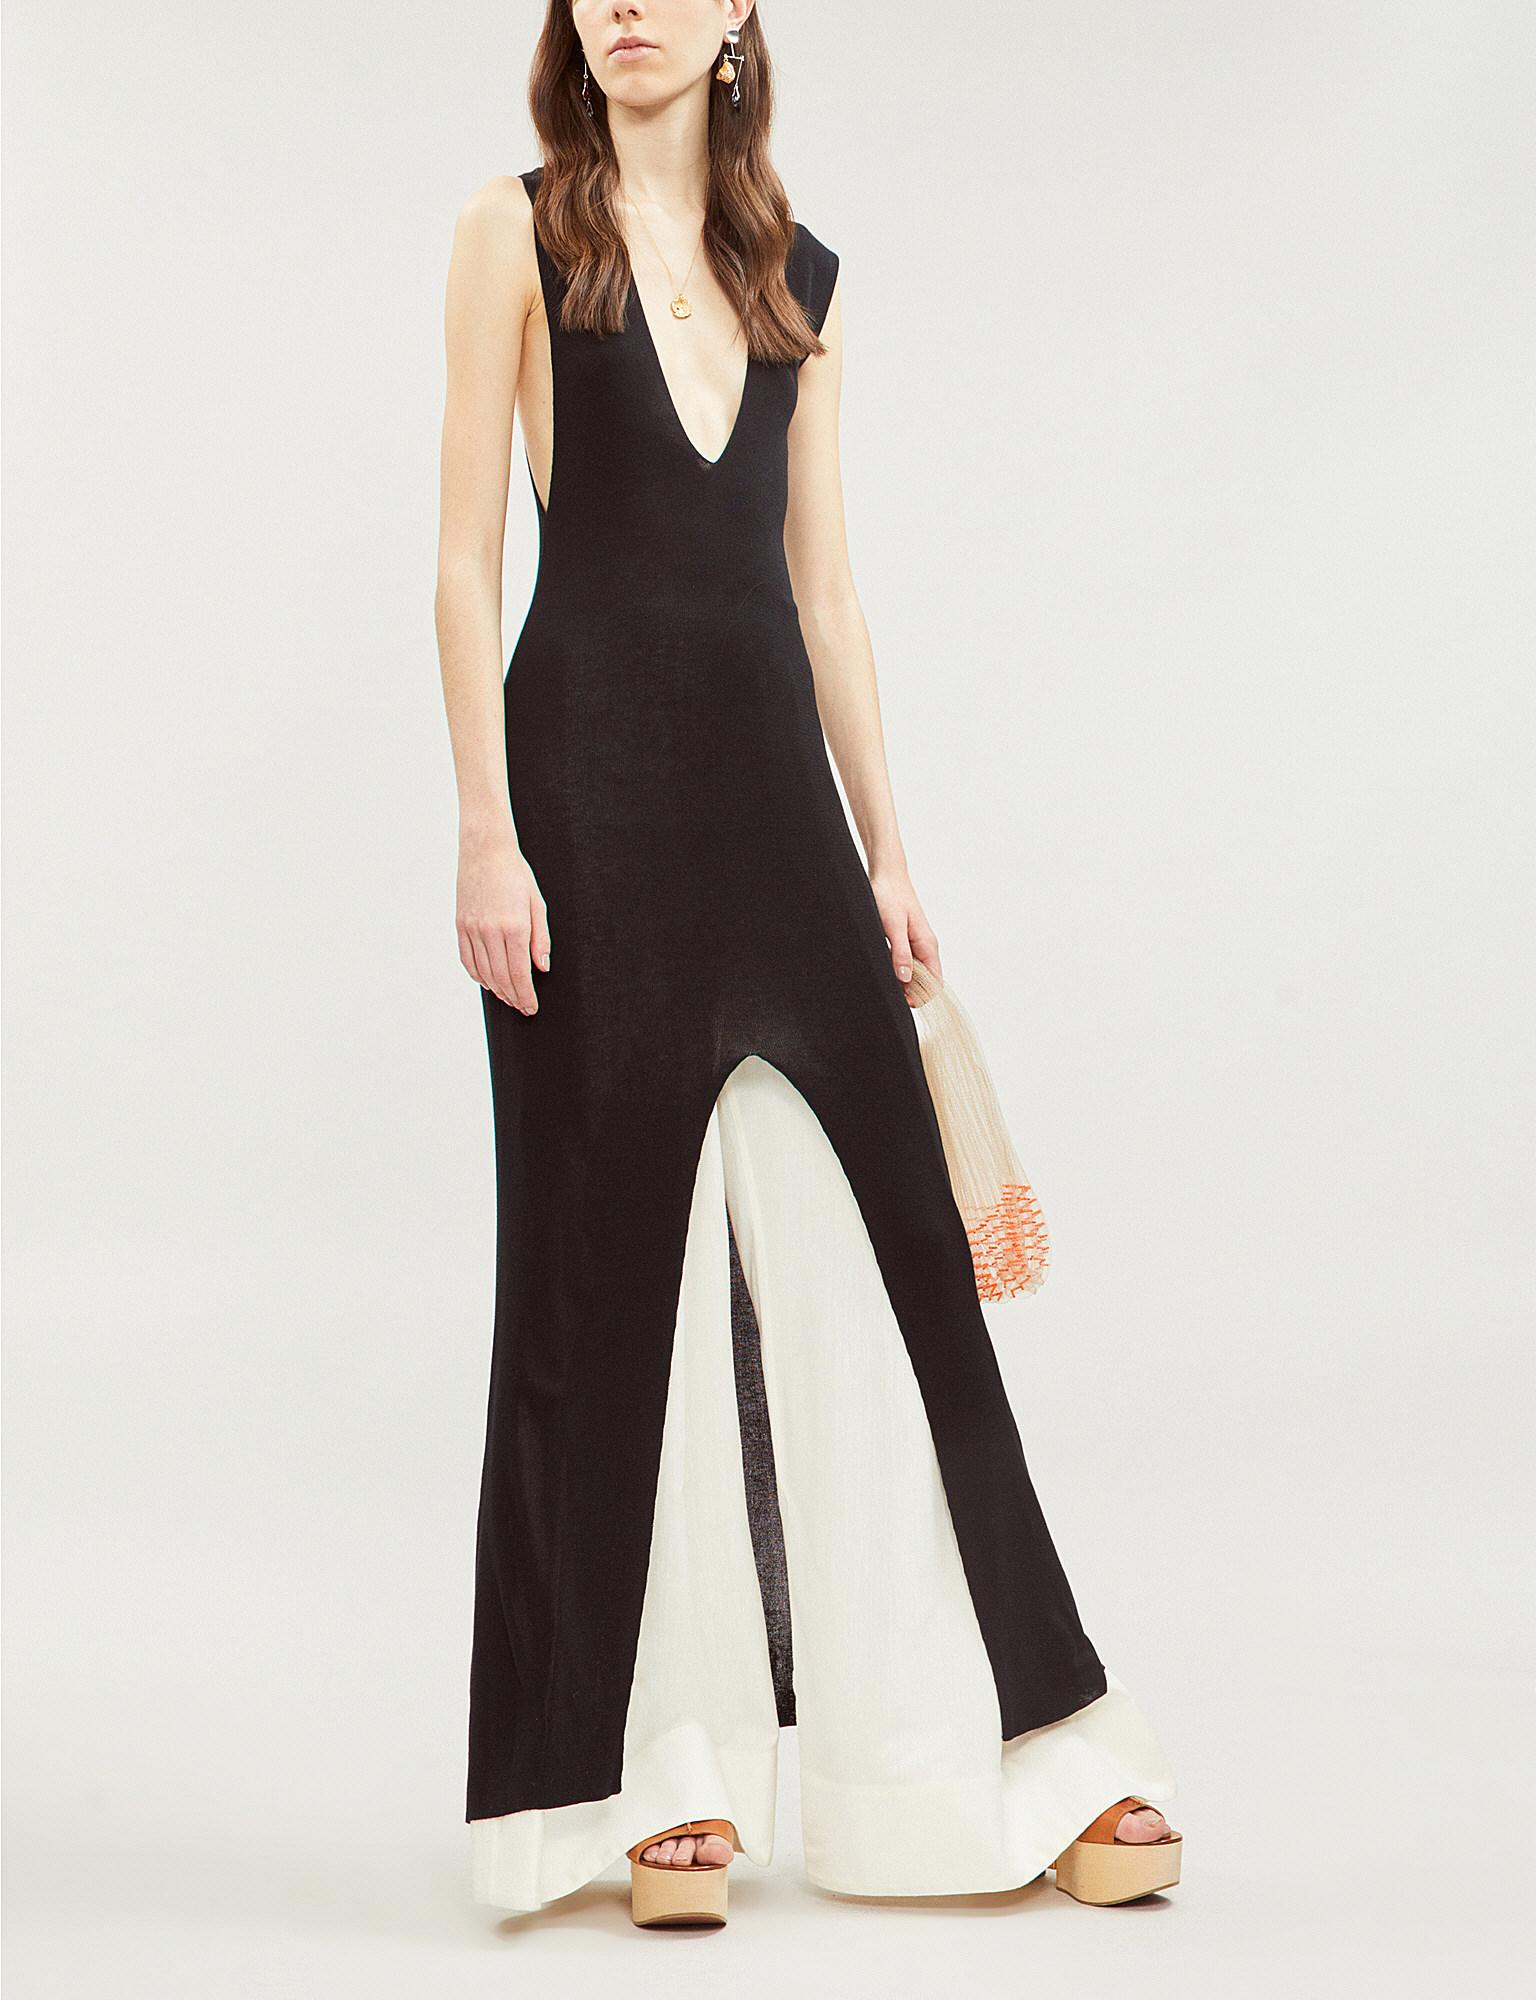 963adea264 Jacquemus - Black Azur V-neck Stretch-jersey Maxi Dress - Lyst. View  fullscreen